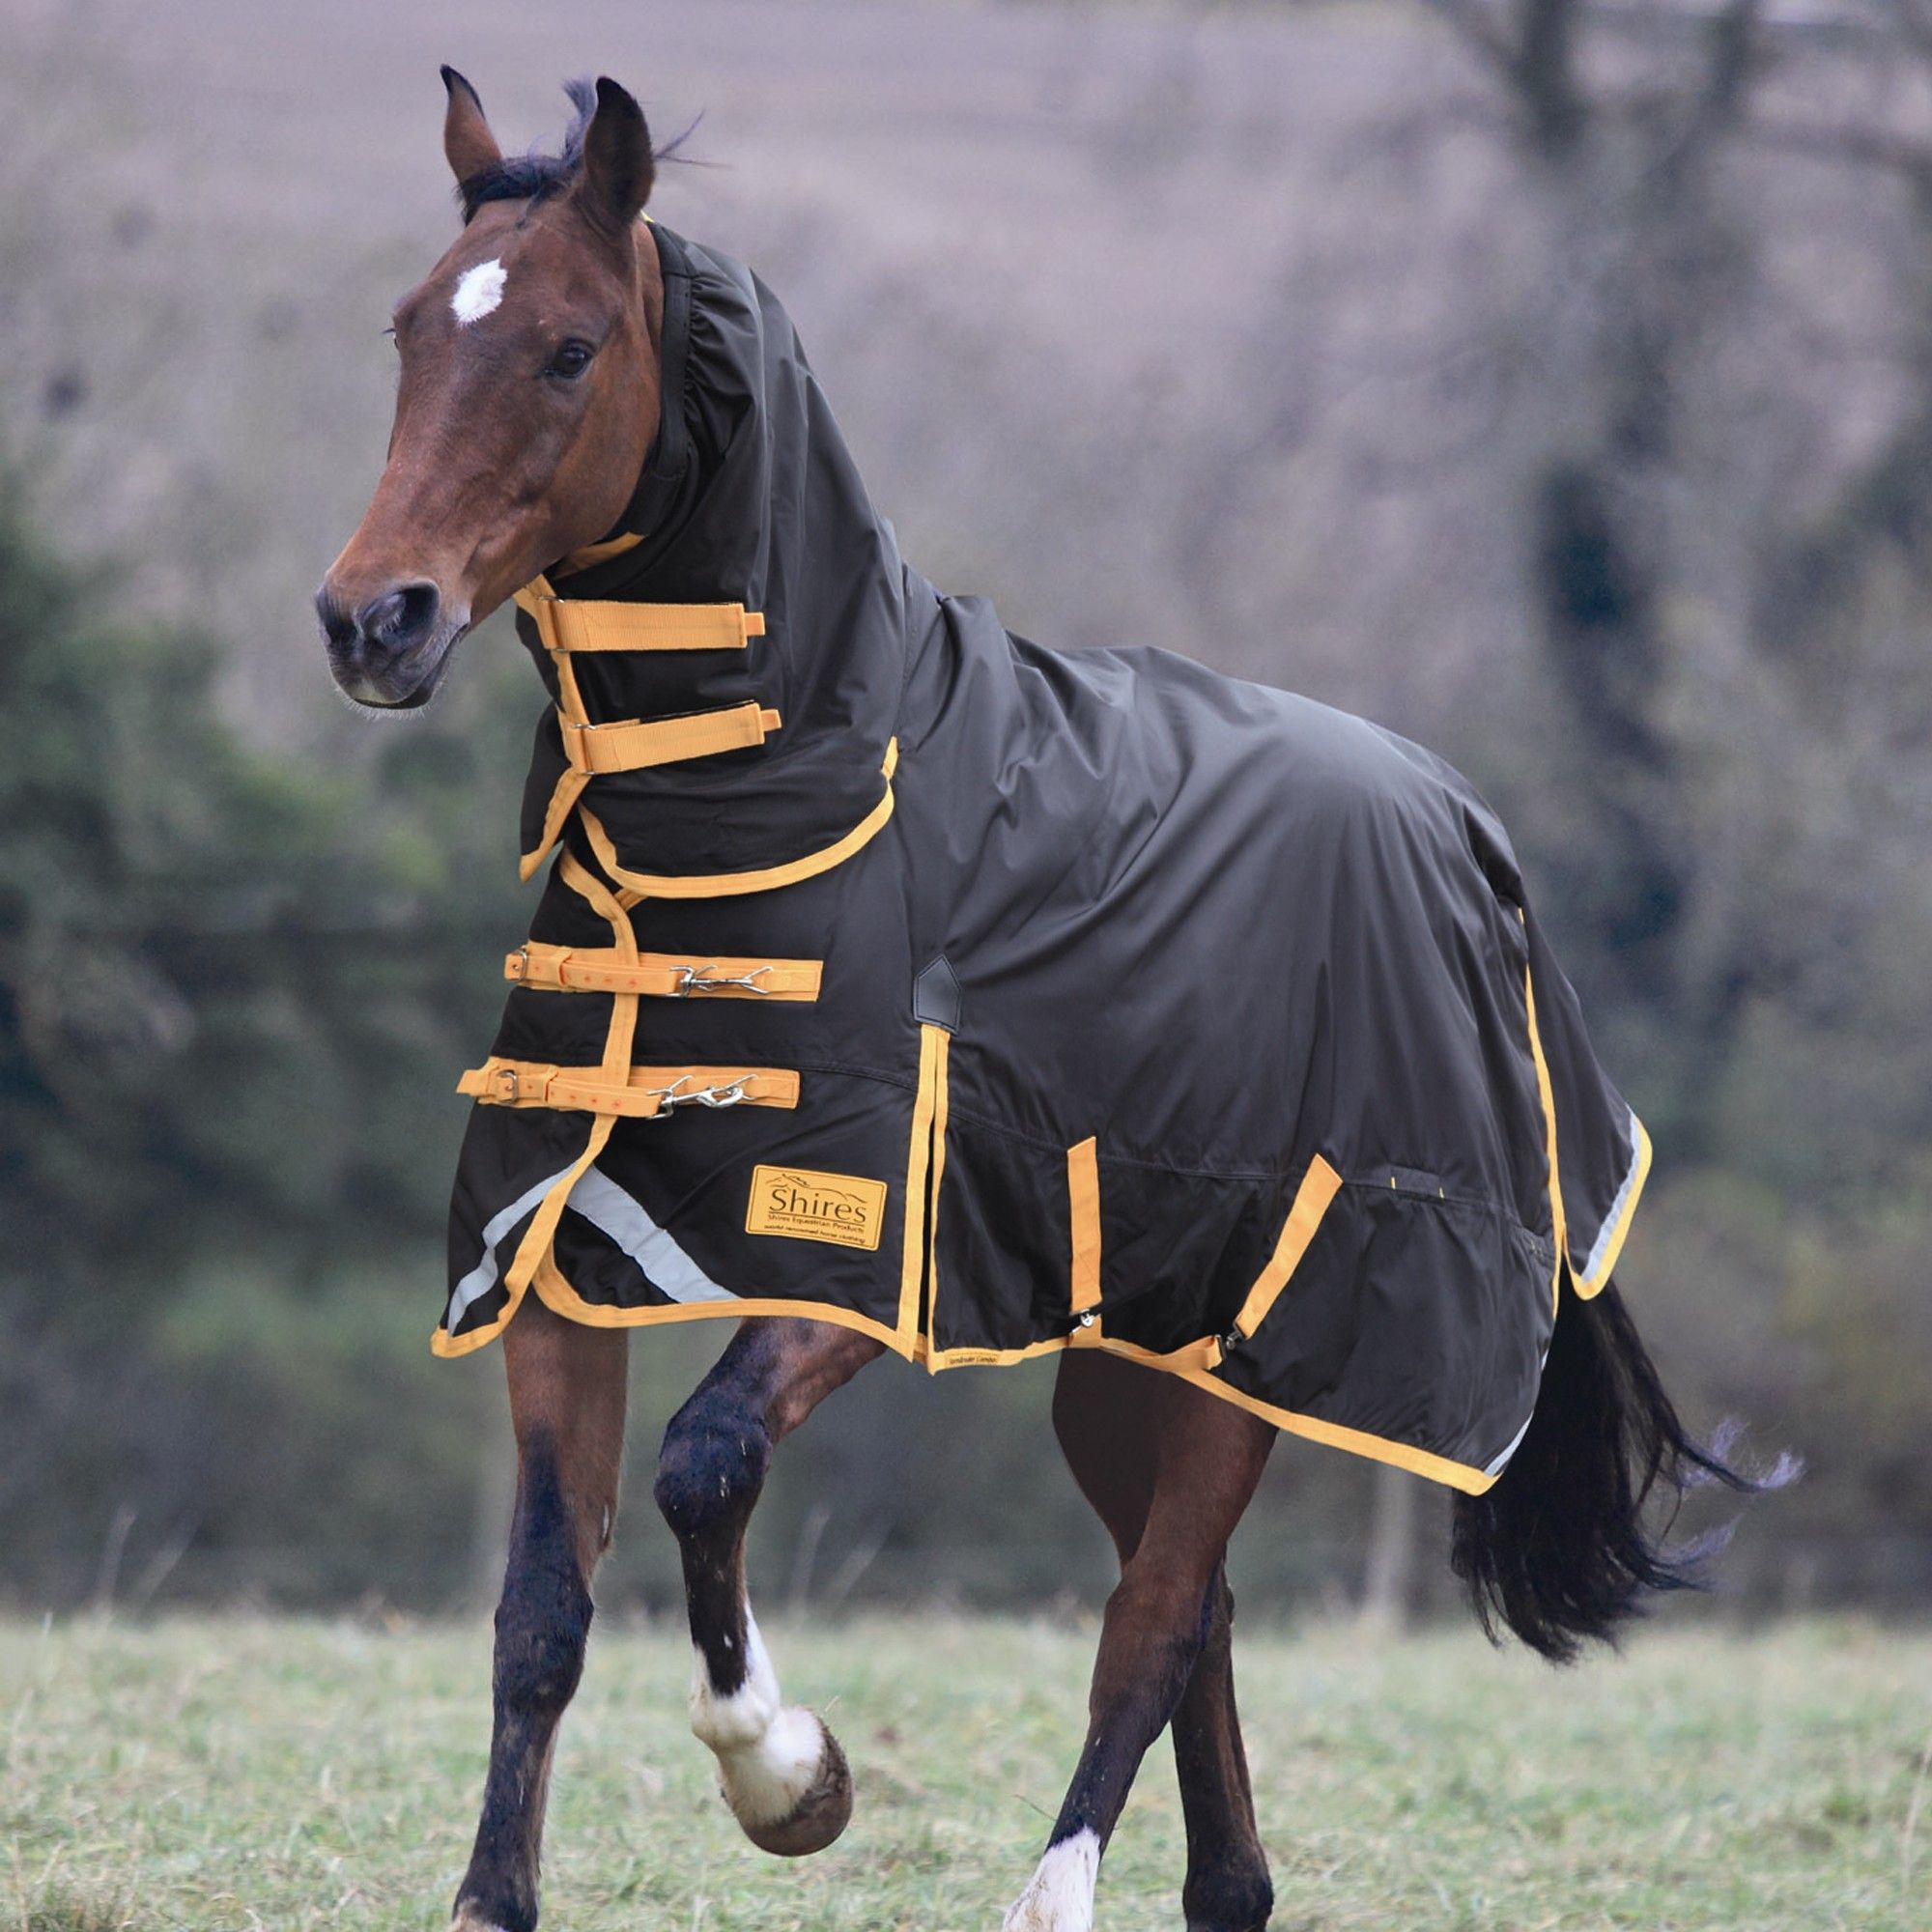 Finding the best horse rug is sometimes difficult, but at